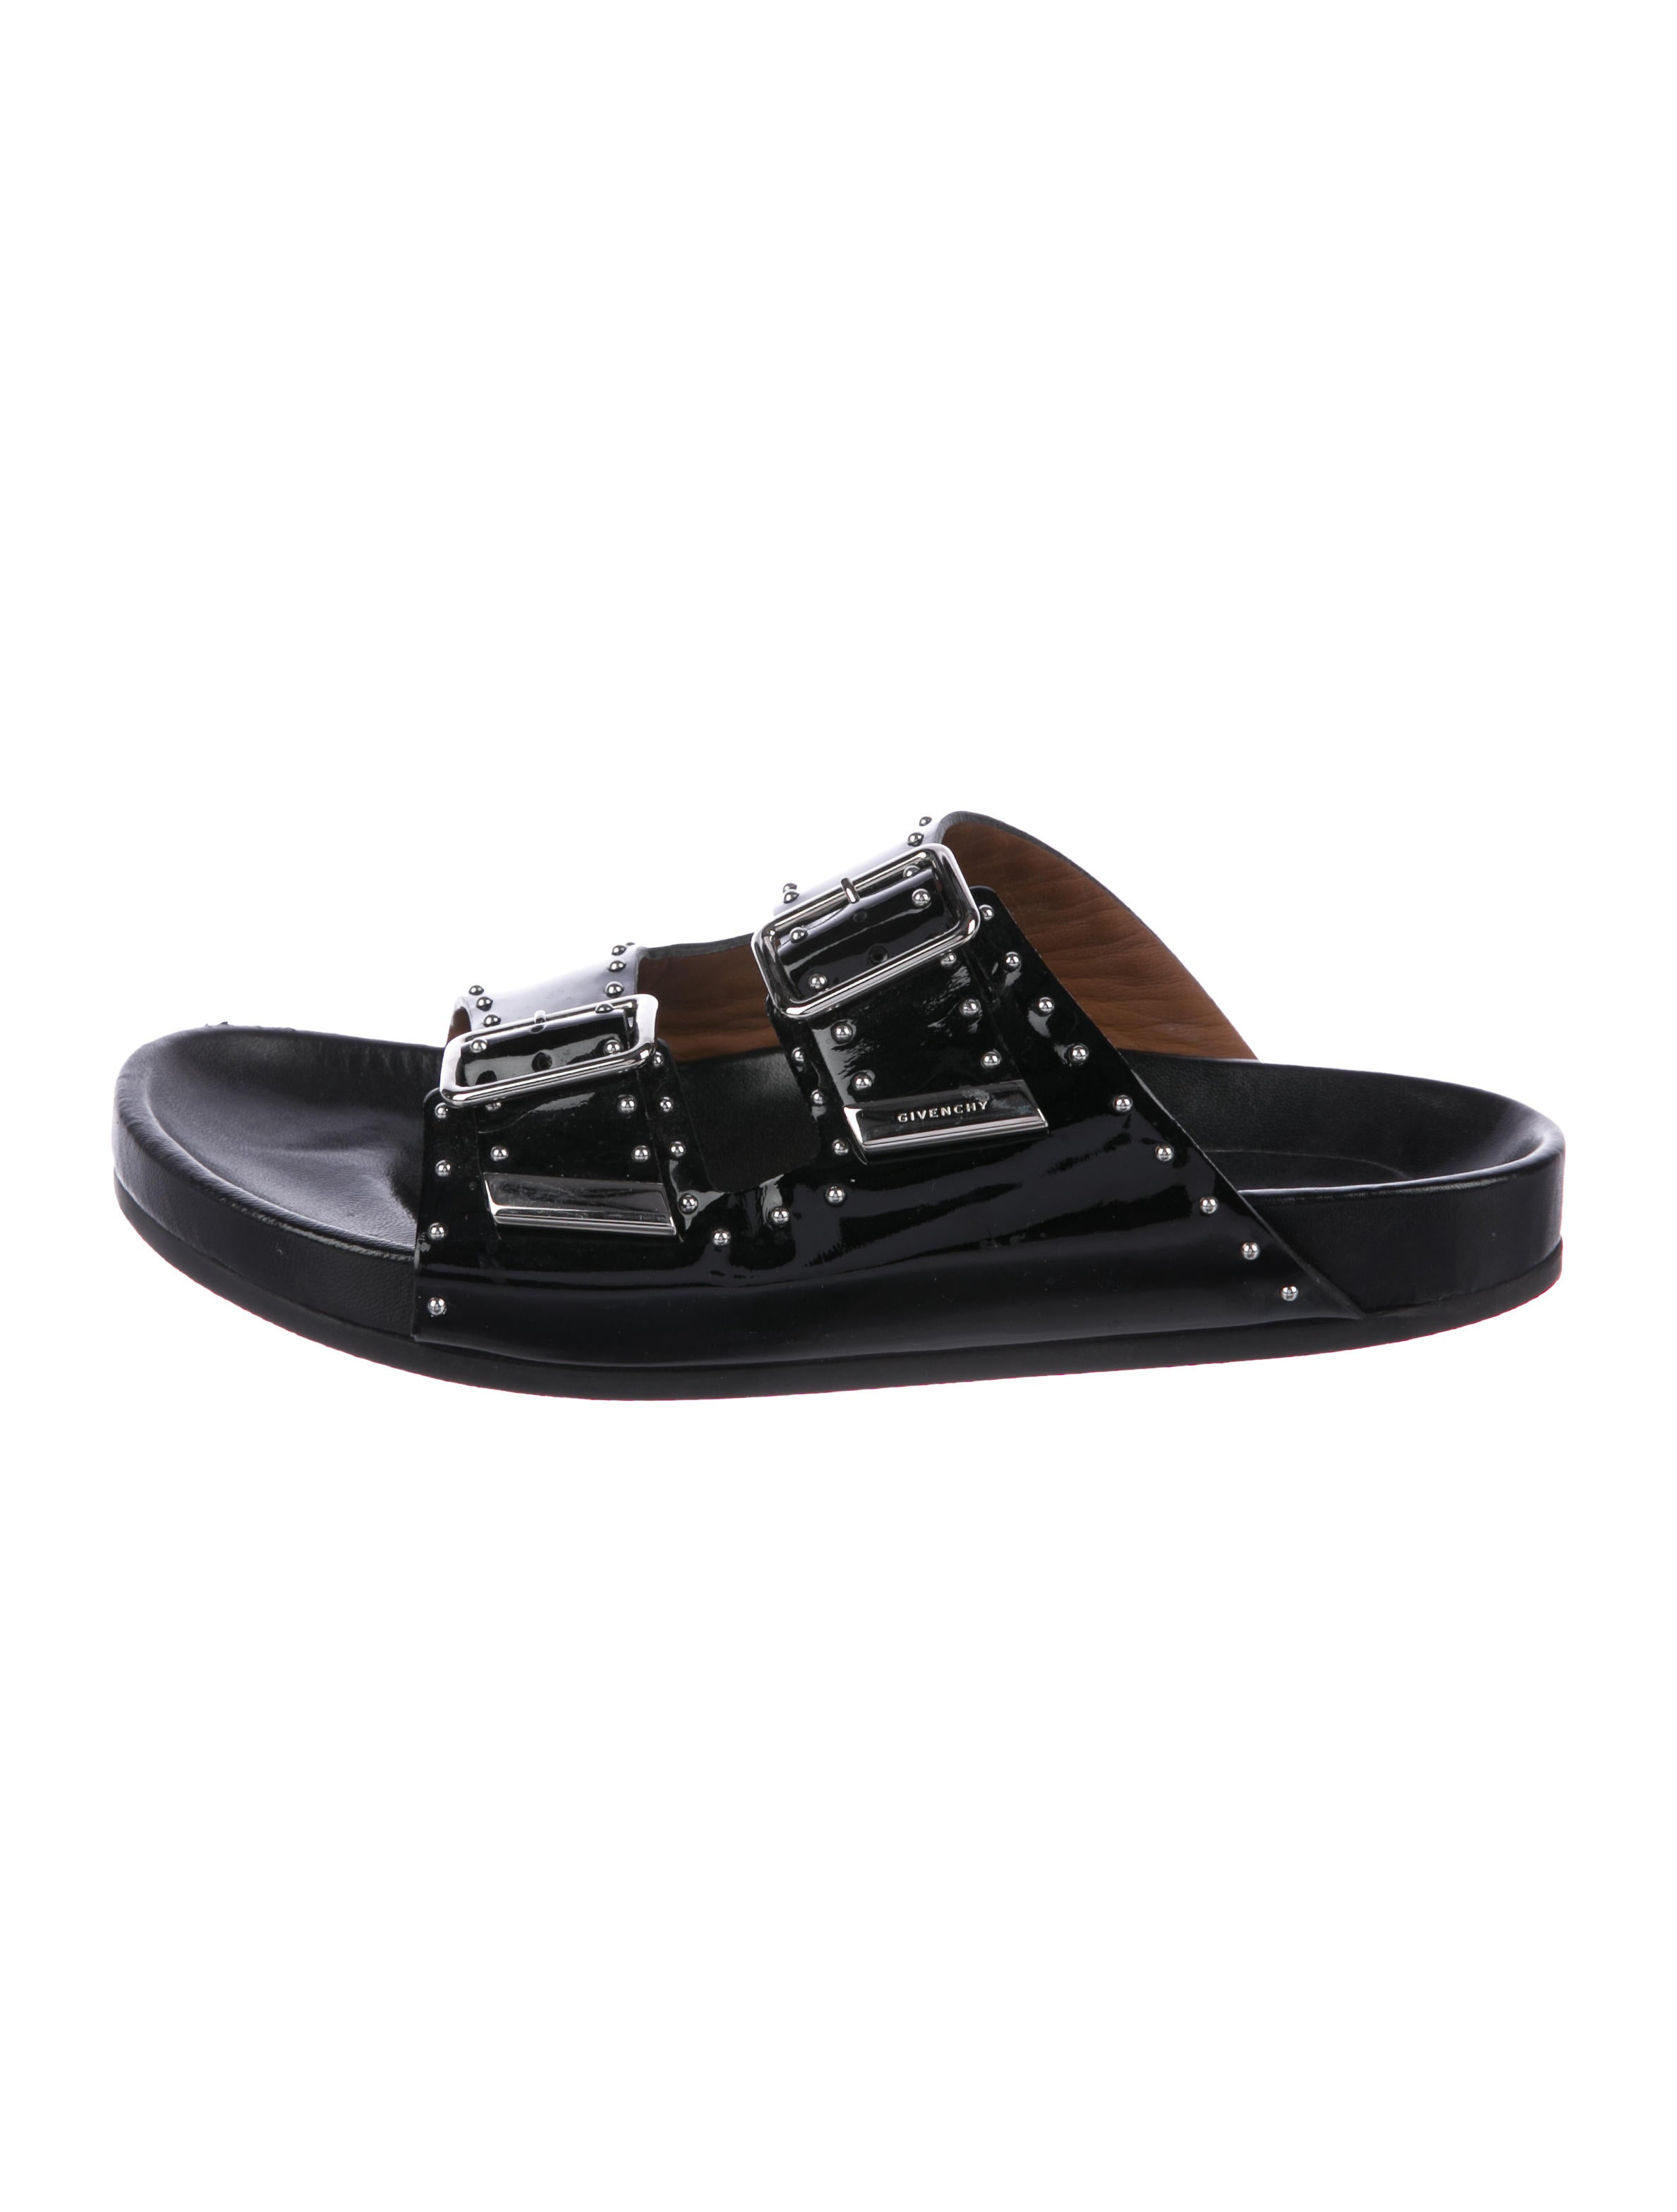 4f9bf9687252 Givenchy Patent Leather Slide Sandals - Shoes - GIV51205